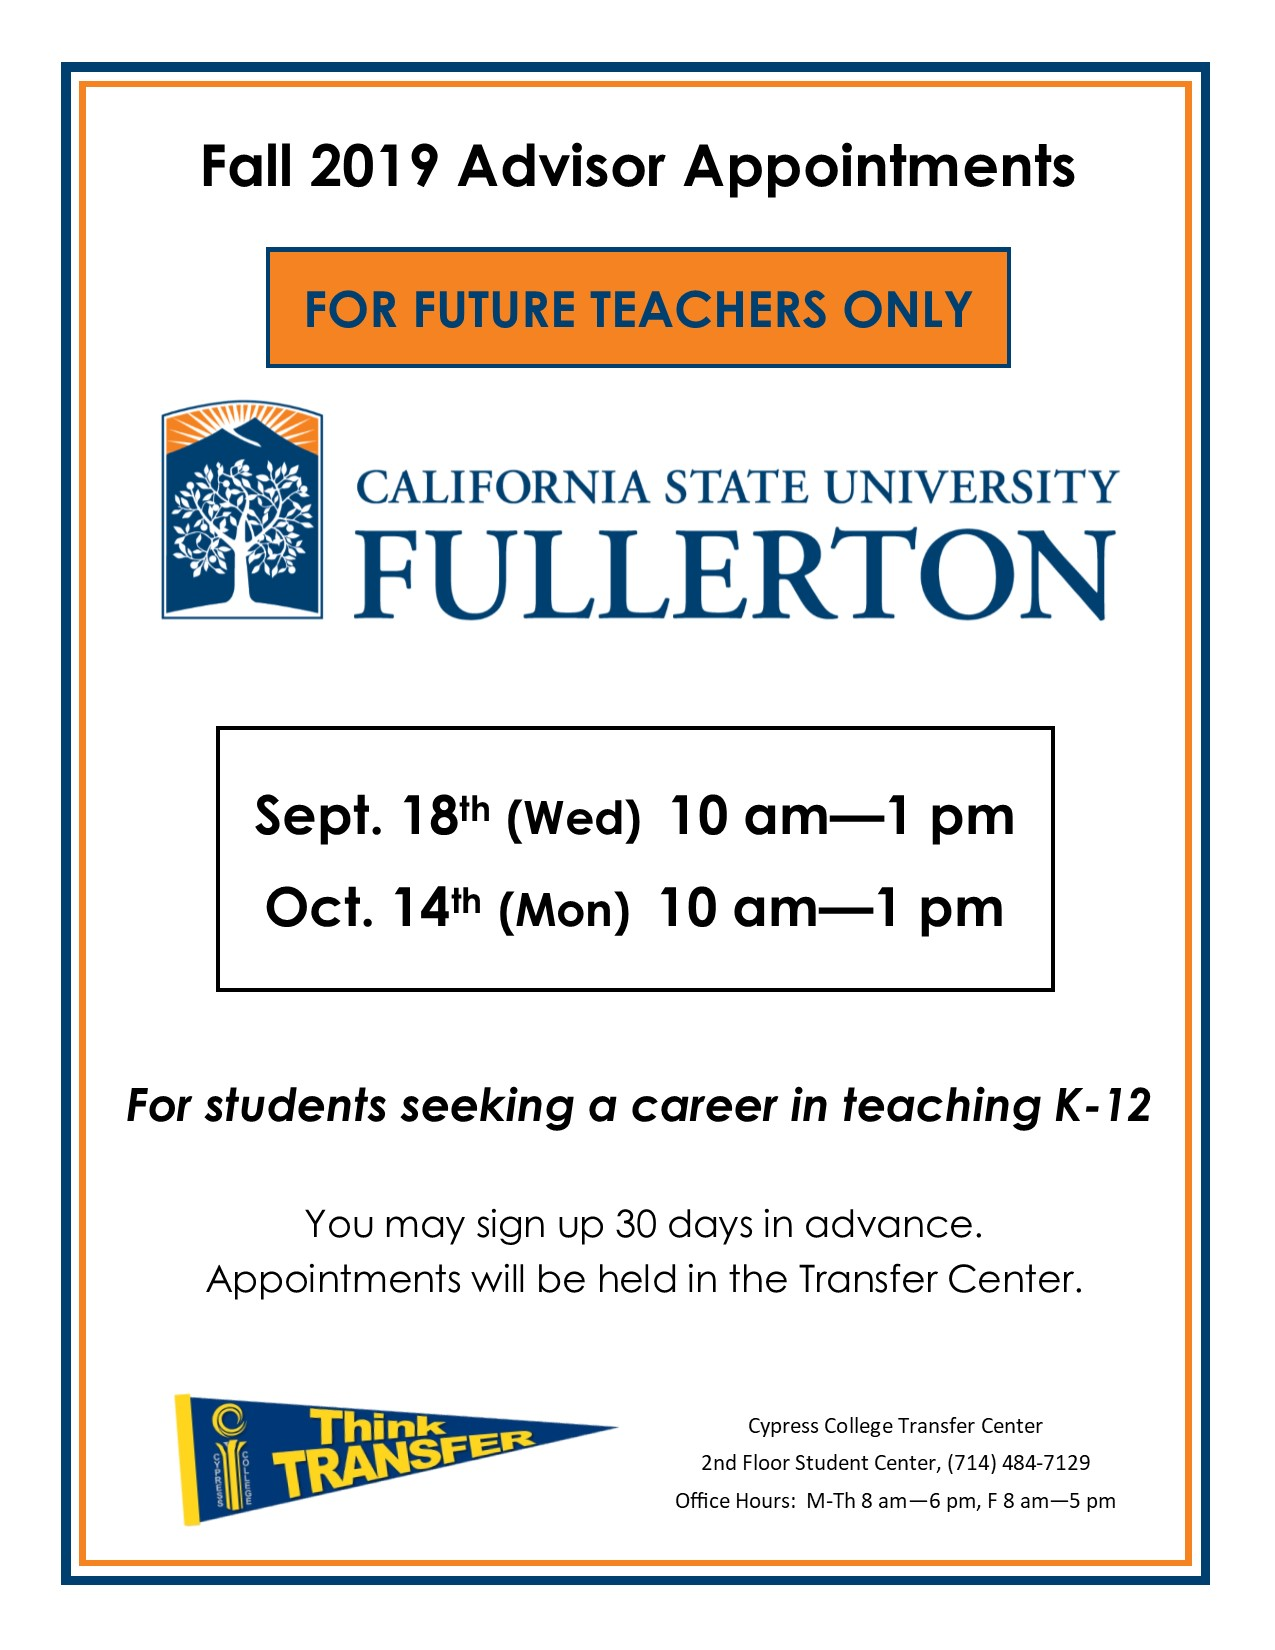 Flyer with white background, CSUF logo, and Transfer Pennant